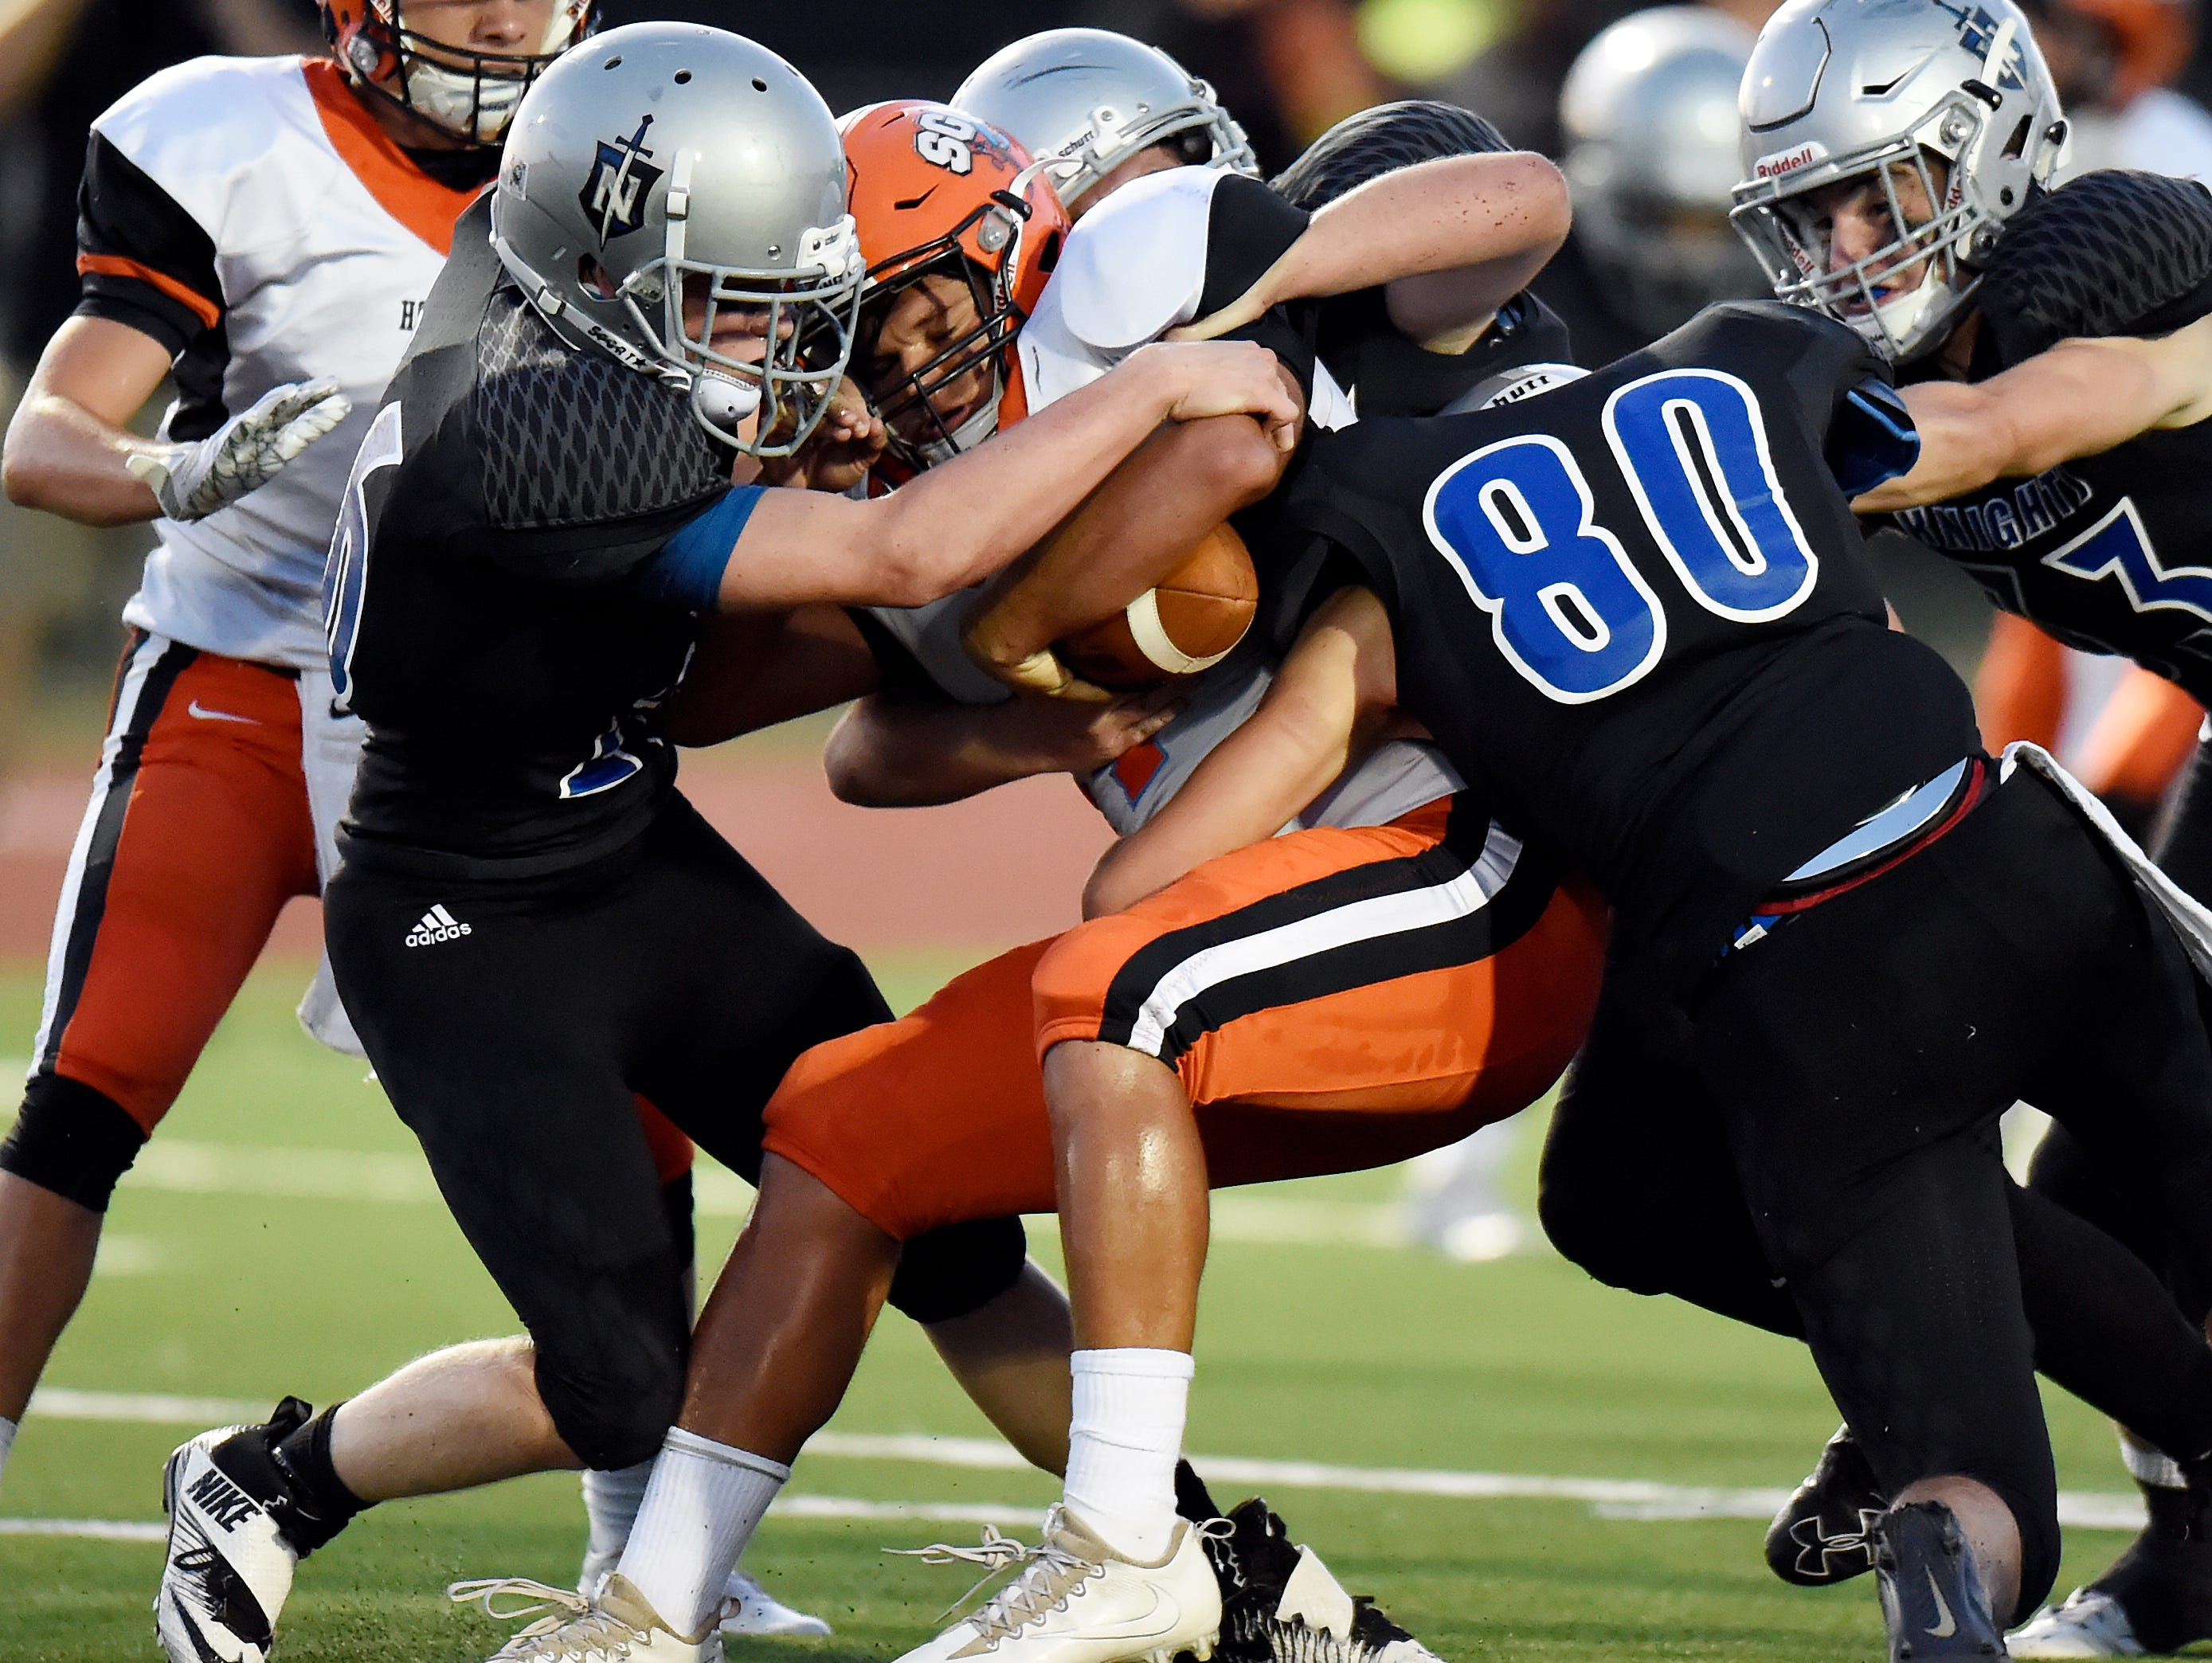 Nolensville linebacker's Connor Rigsby, left, and Tim Stayskal (80) sack South Gibson quarterback Dustin Moore (14) during the first half on Friday, Sept. 2, 2016, in Nolensville, Tenn.